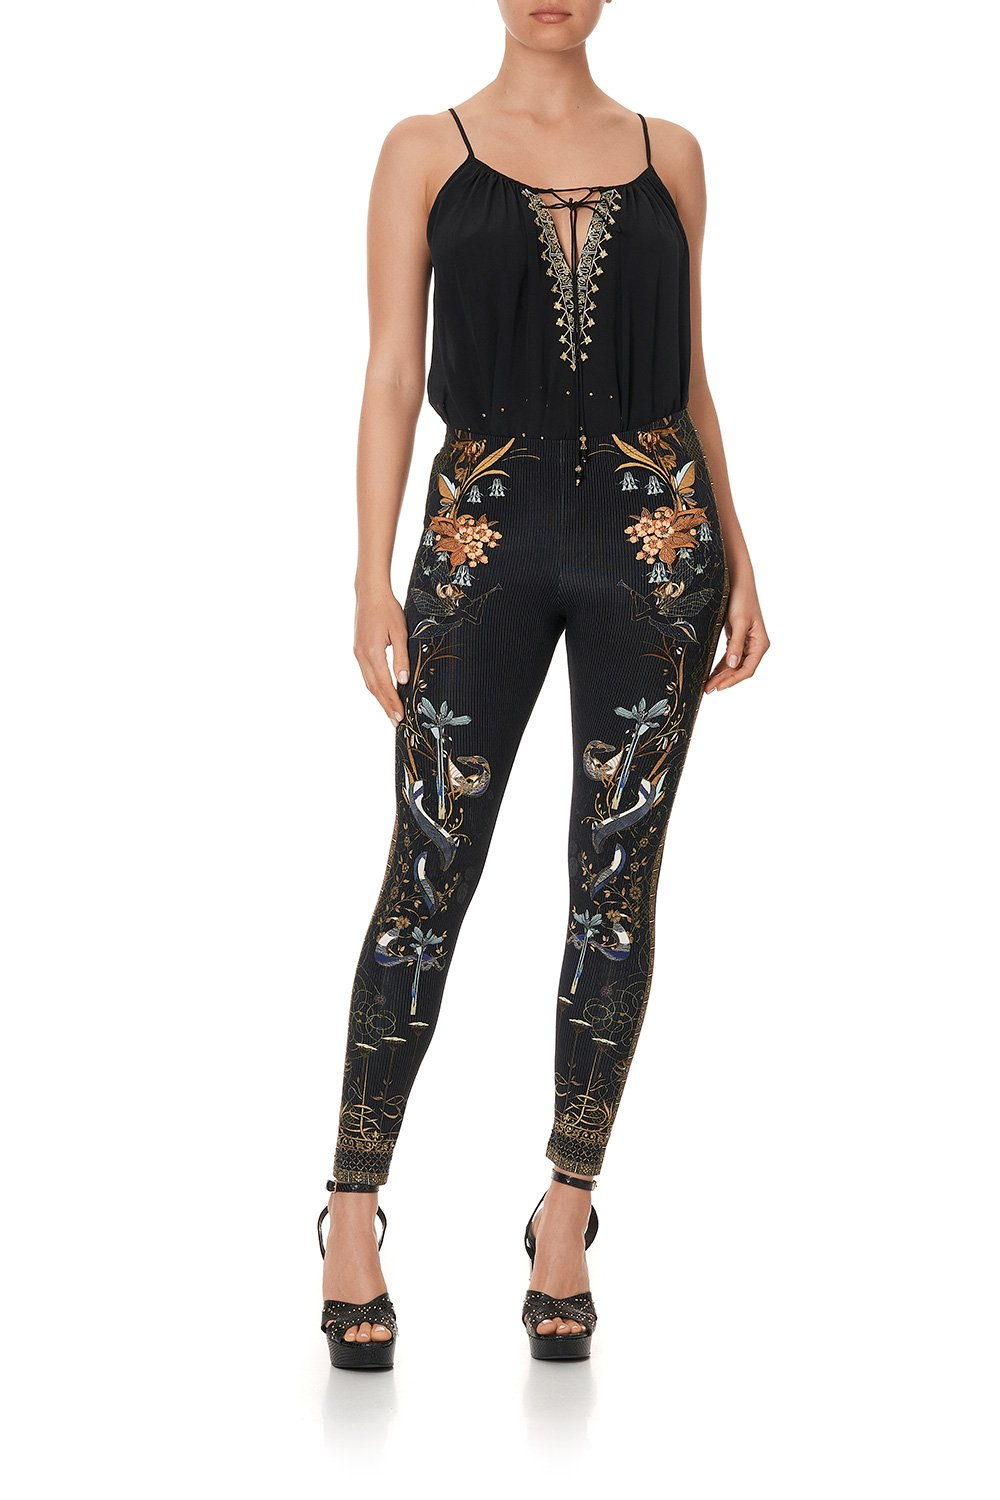 LEGGINGS THE JEWELLED ARROW